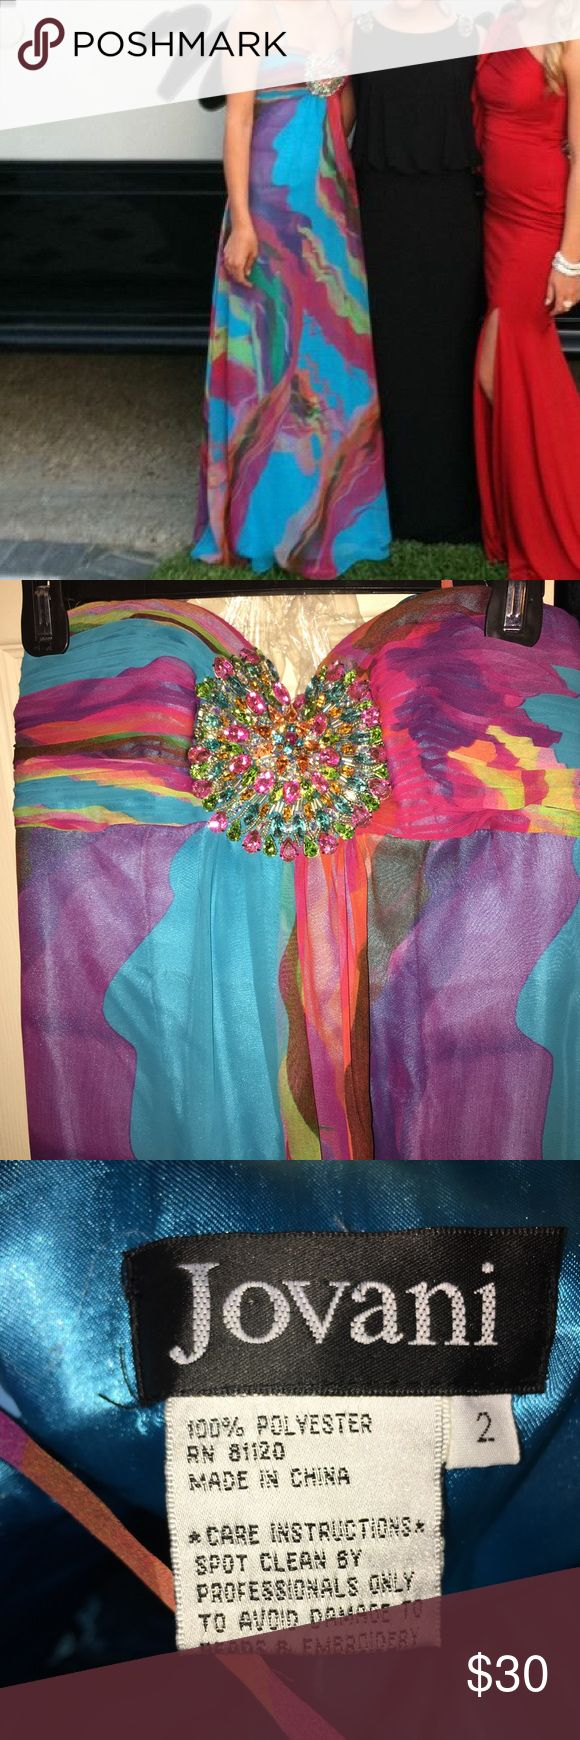 Multi color Formal dress Jovani brand Jovani formal dress- multi colored. Worn once and was dry cleaned. Beautiful dress- all stones still intact. Comes with extra blue fabric. Can be worn strapless or with the strap. Size 2 Jovani Dresses Prom